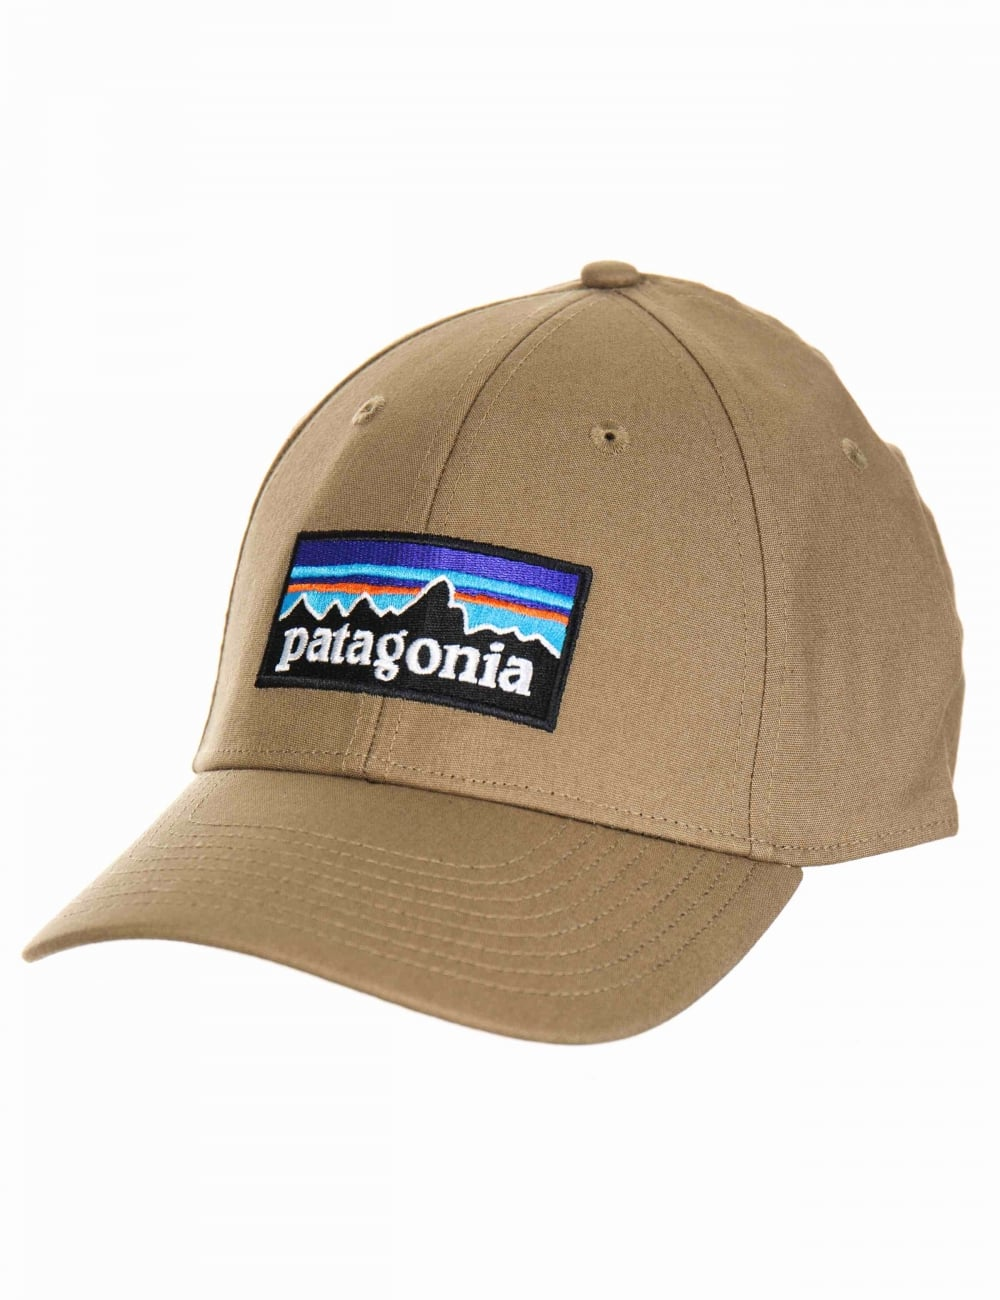 ad299622699 Patagonia P-6 Logo Stretch Fit Hat - Ash Tan - Hat Shop from Fat ...